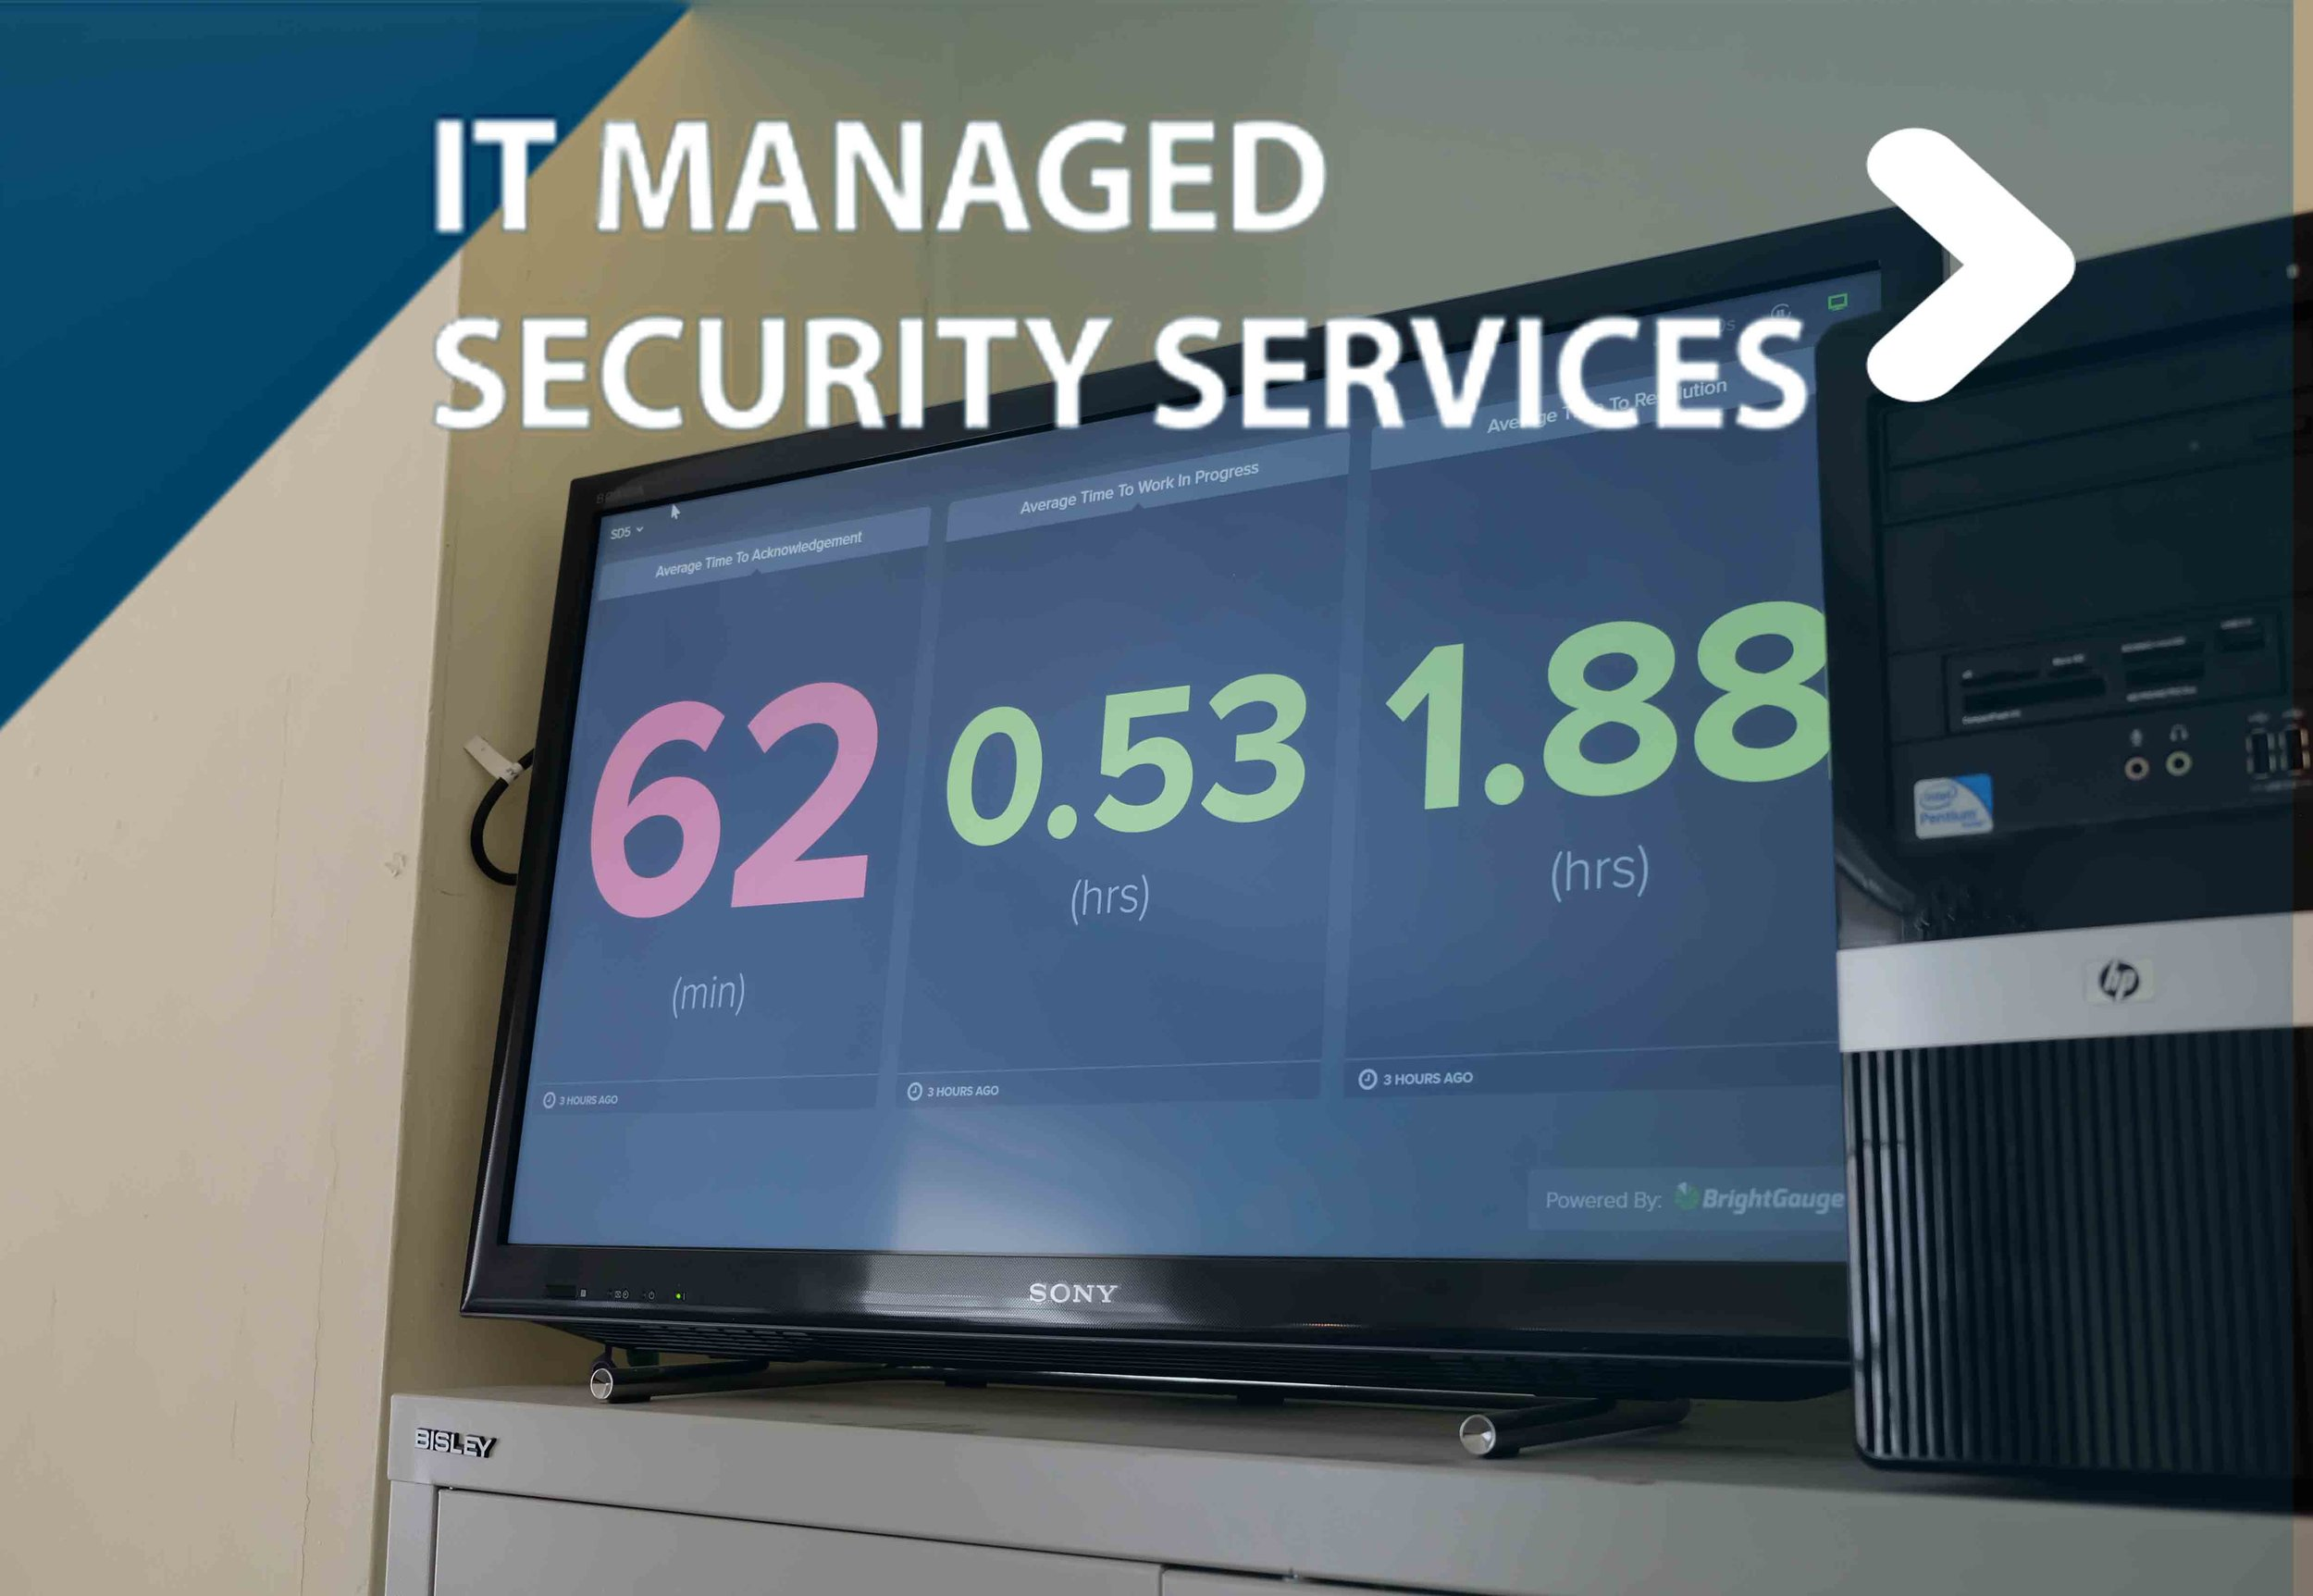 IT Managed Security Services